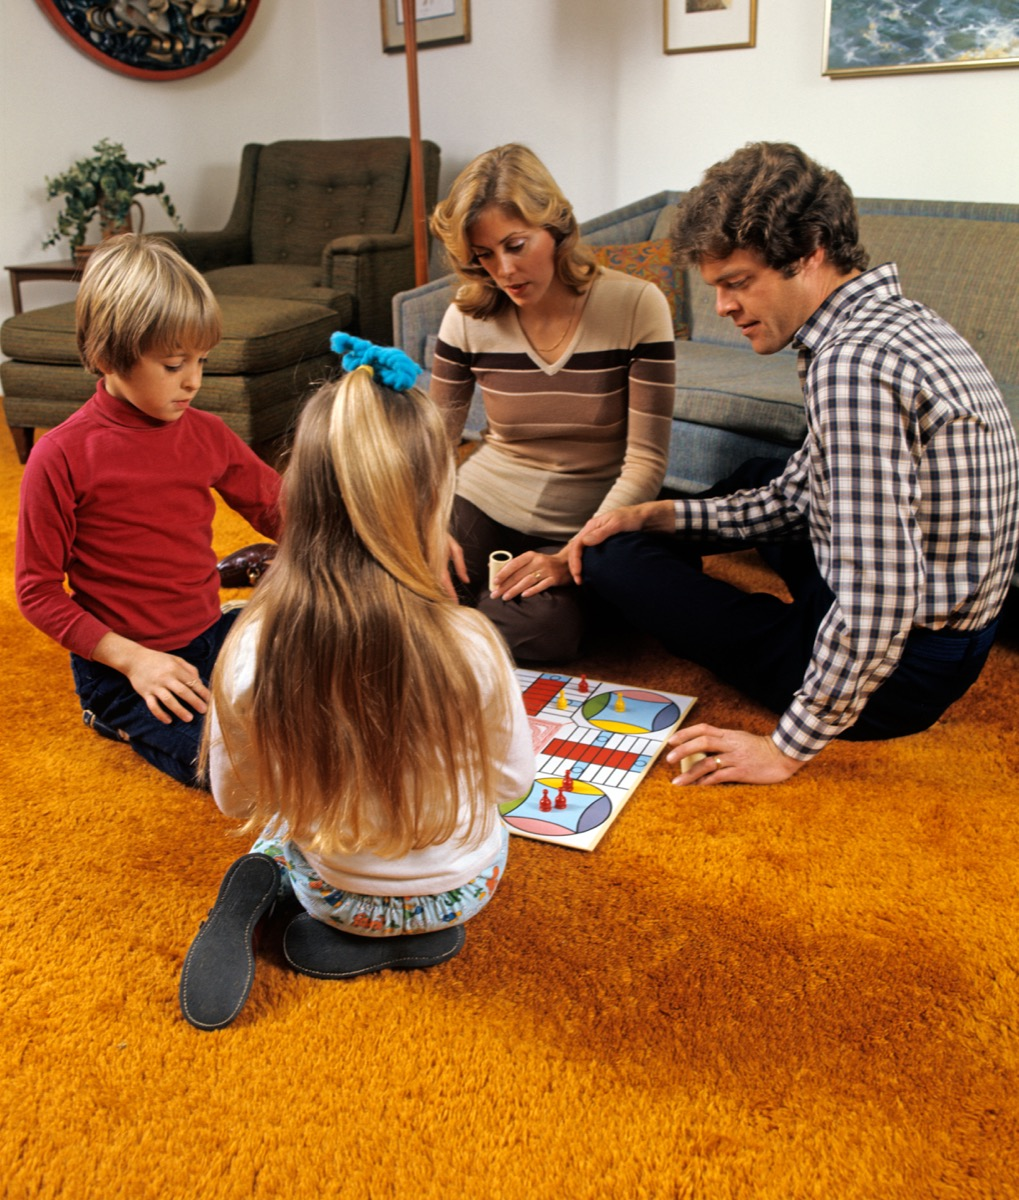 Family Playing Games on Shag Carpeting 1970s Home Decor